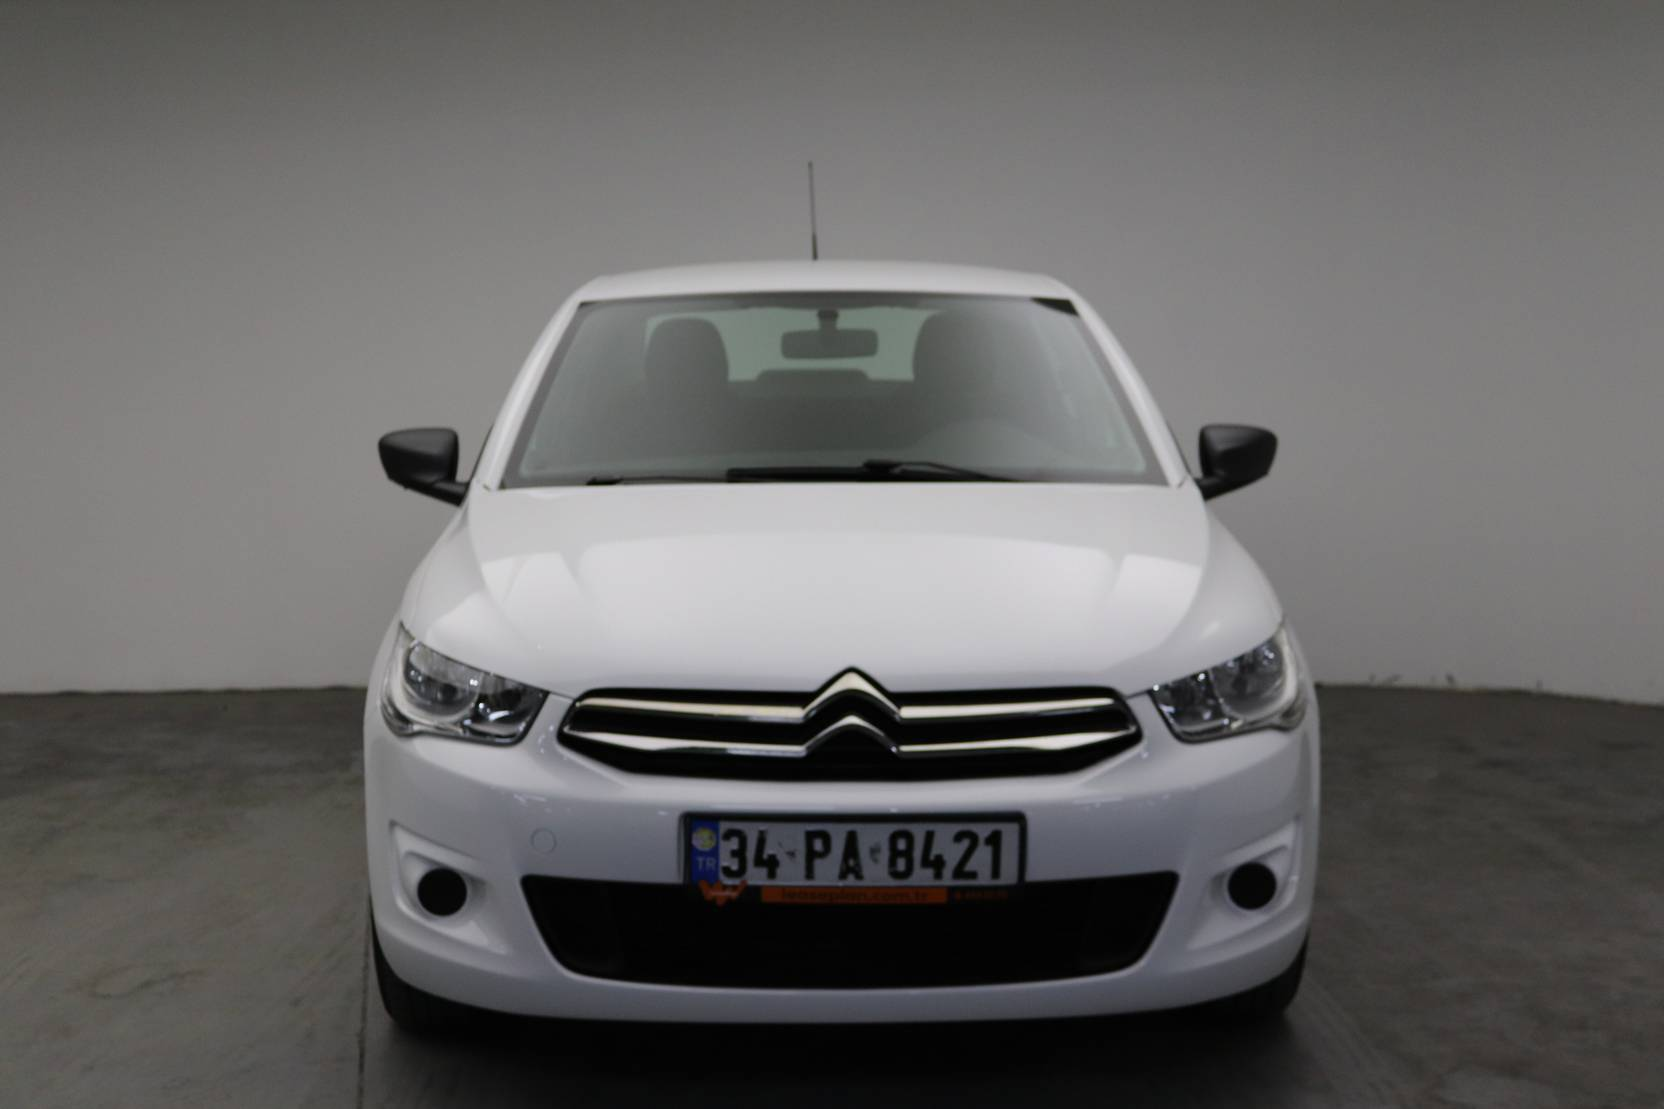 Citroën C-Elysee 1.6 HDI 92HP M/T ATTRACTION detail2